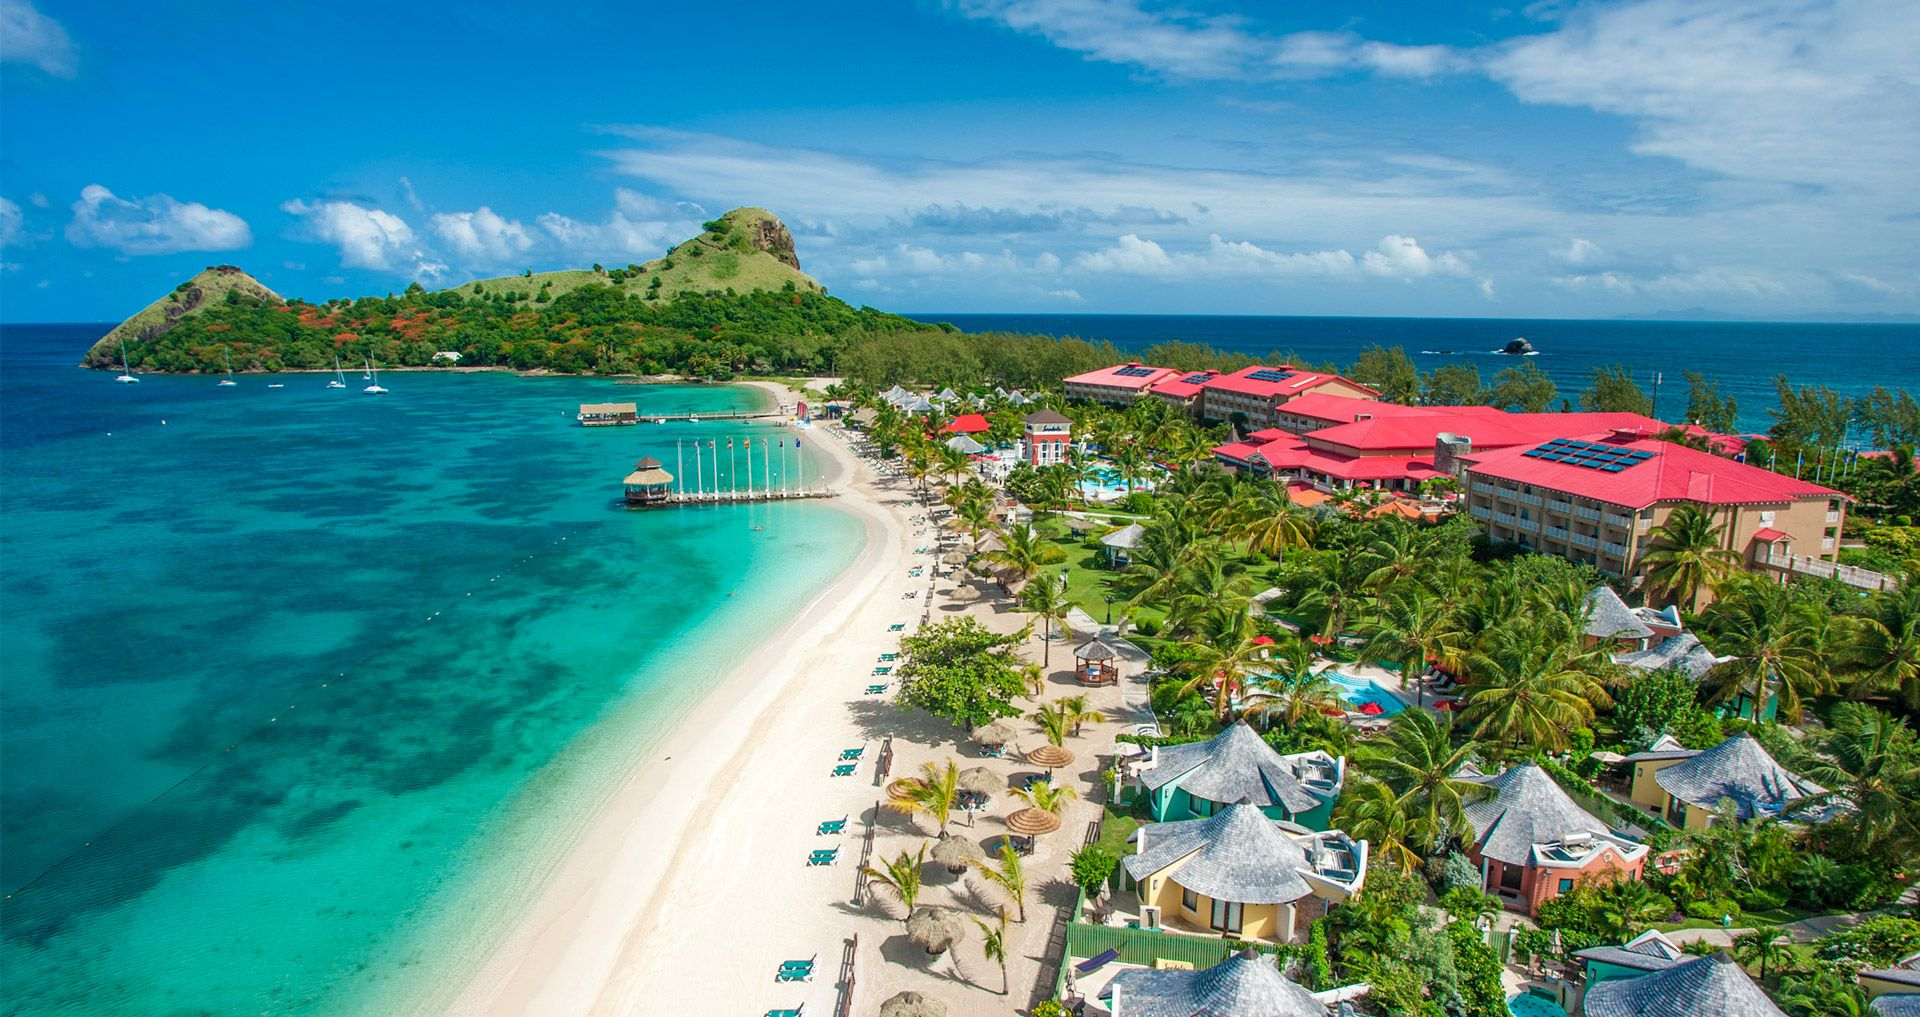 Sandals Grande St. Lucia resort